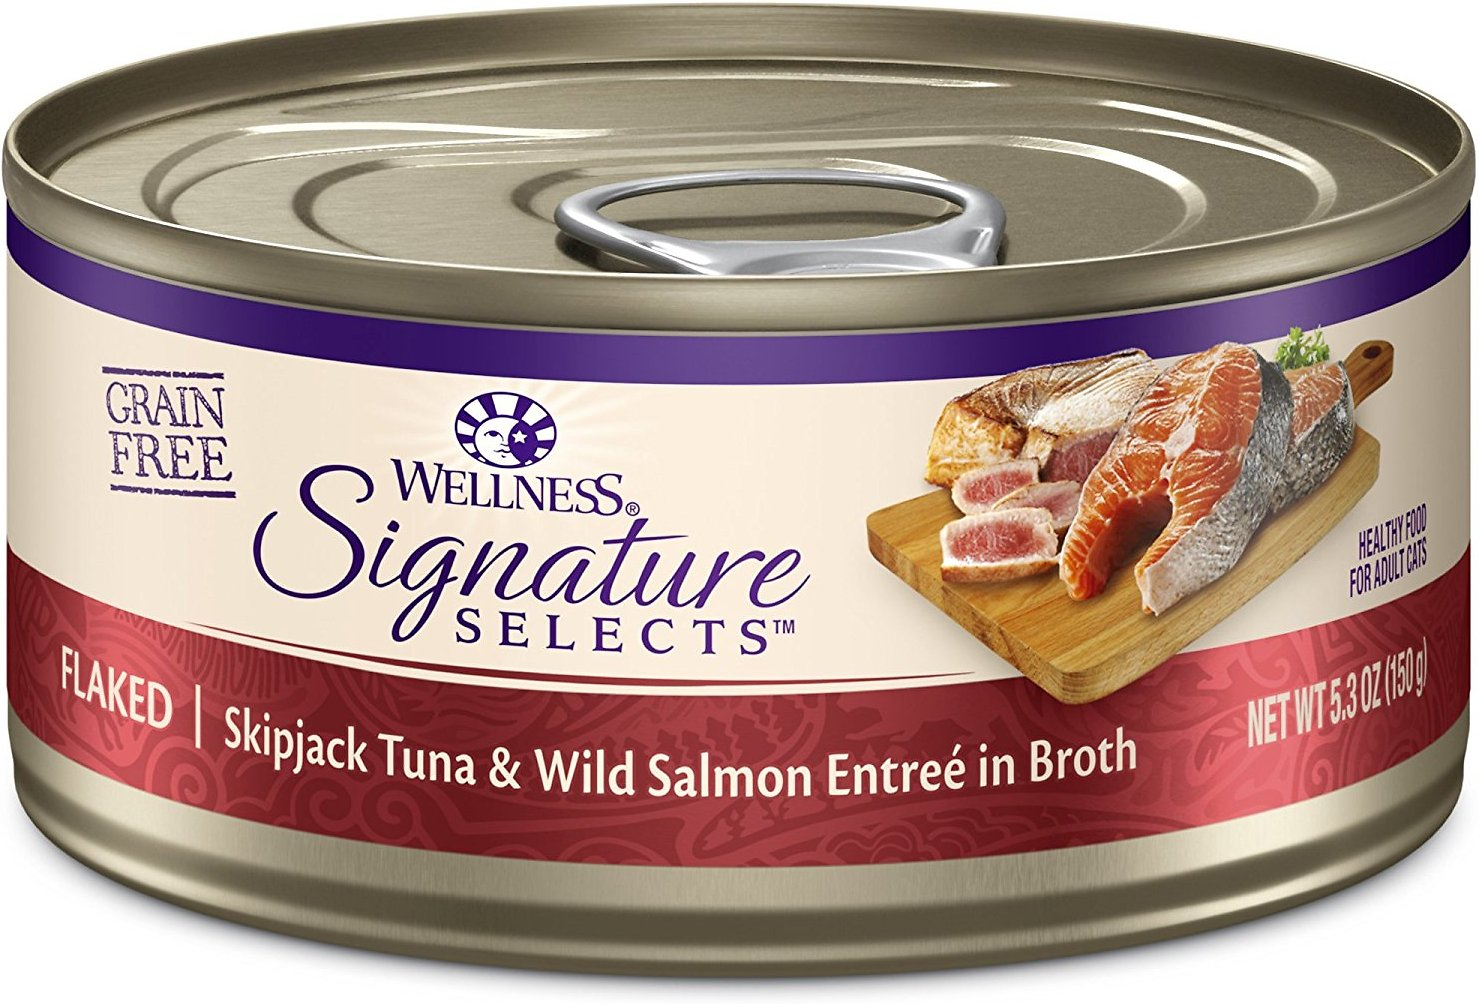 Wellness CORE Signature Selects Flaked Skipjack Tuna & Wild Salmon Entree in Broth Grain-Free Canned Cat Food, 2.8-oz